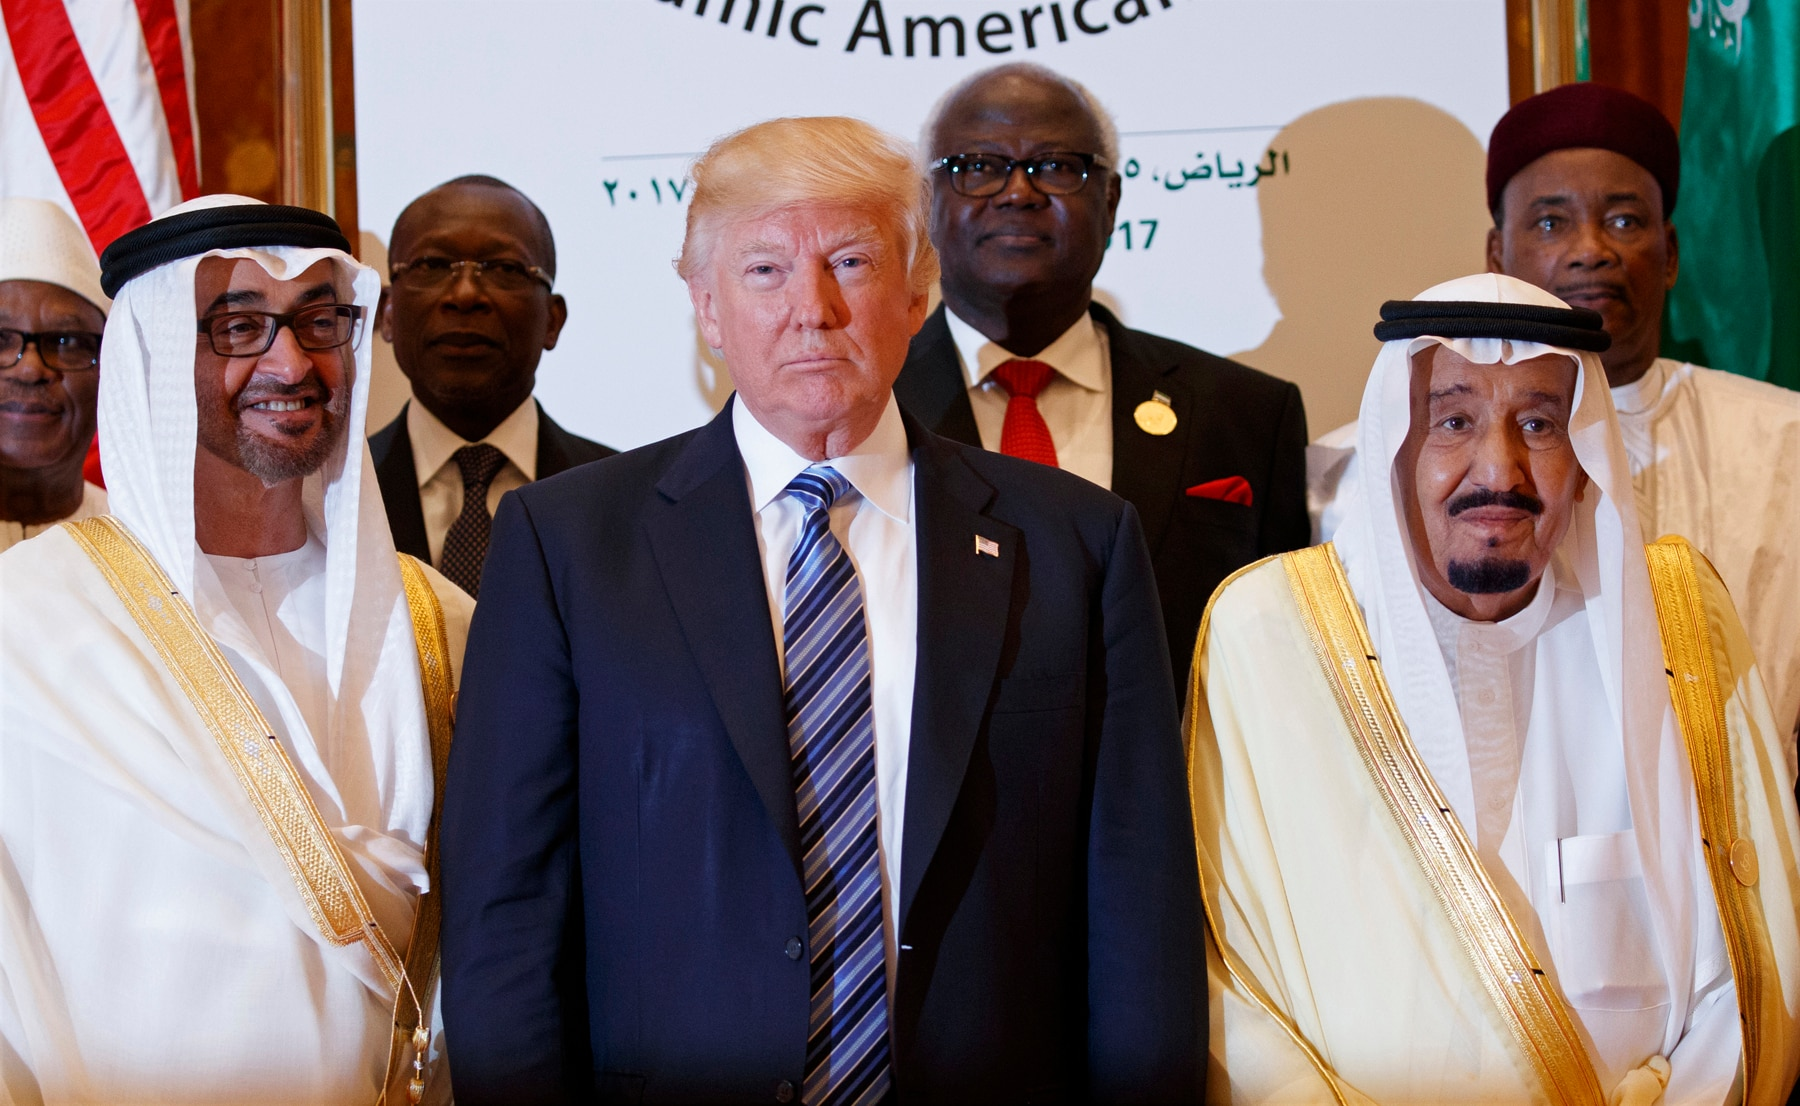 Donald Trump-GCC leaders' summit begins in Saudi Arabia